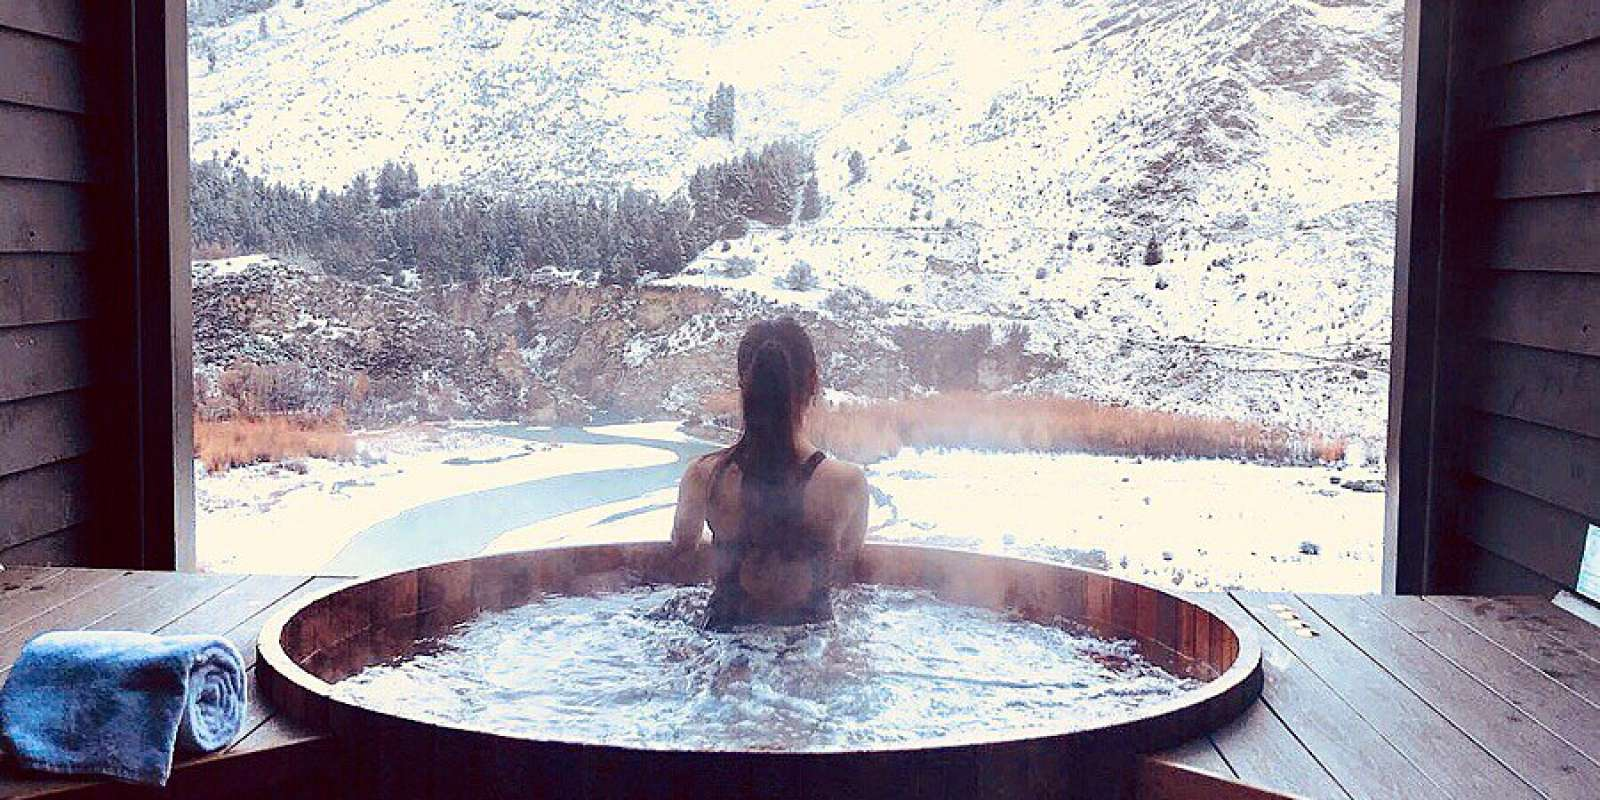 Onsen Hot Pools in Winter surrounded in snow. @karyeaaa on Instagram.